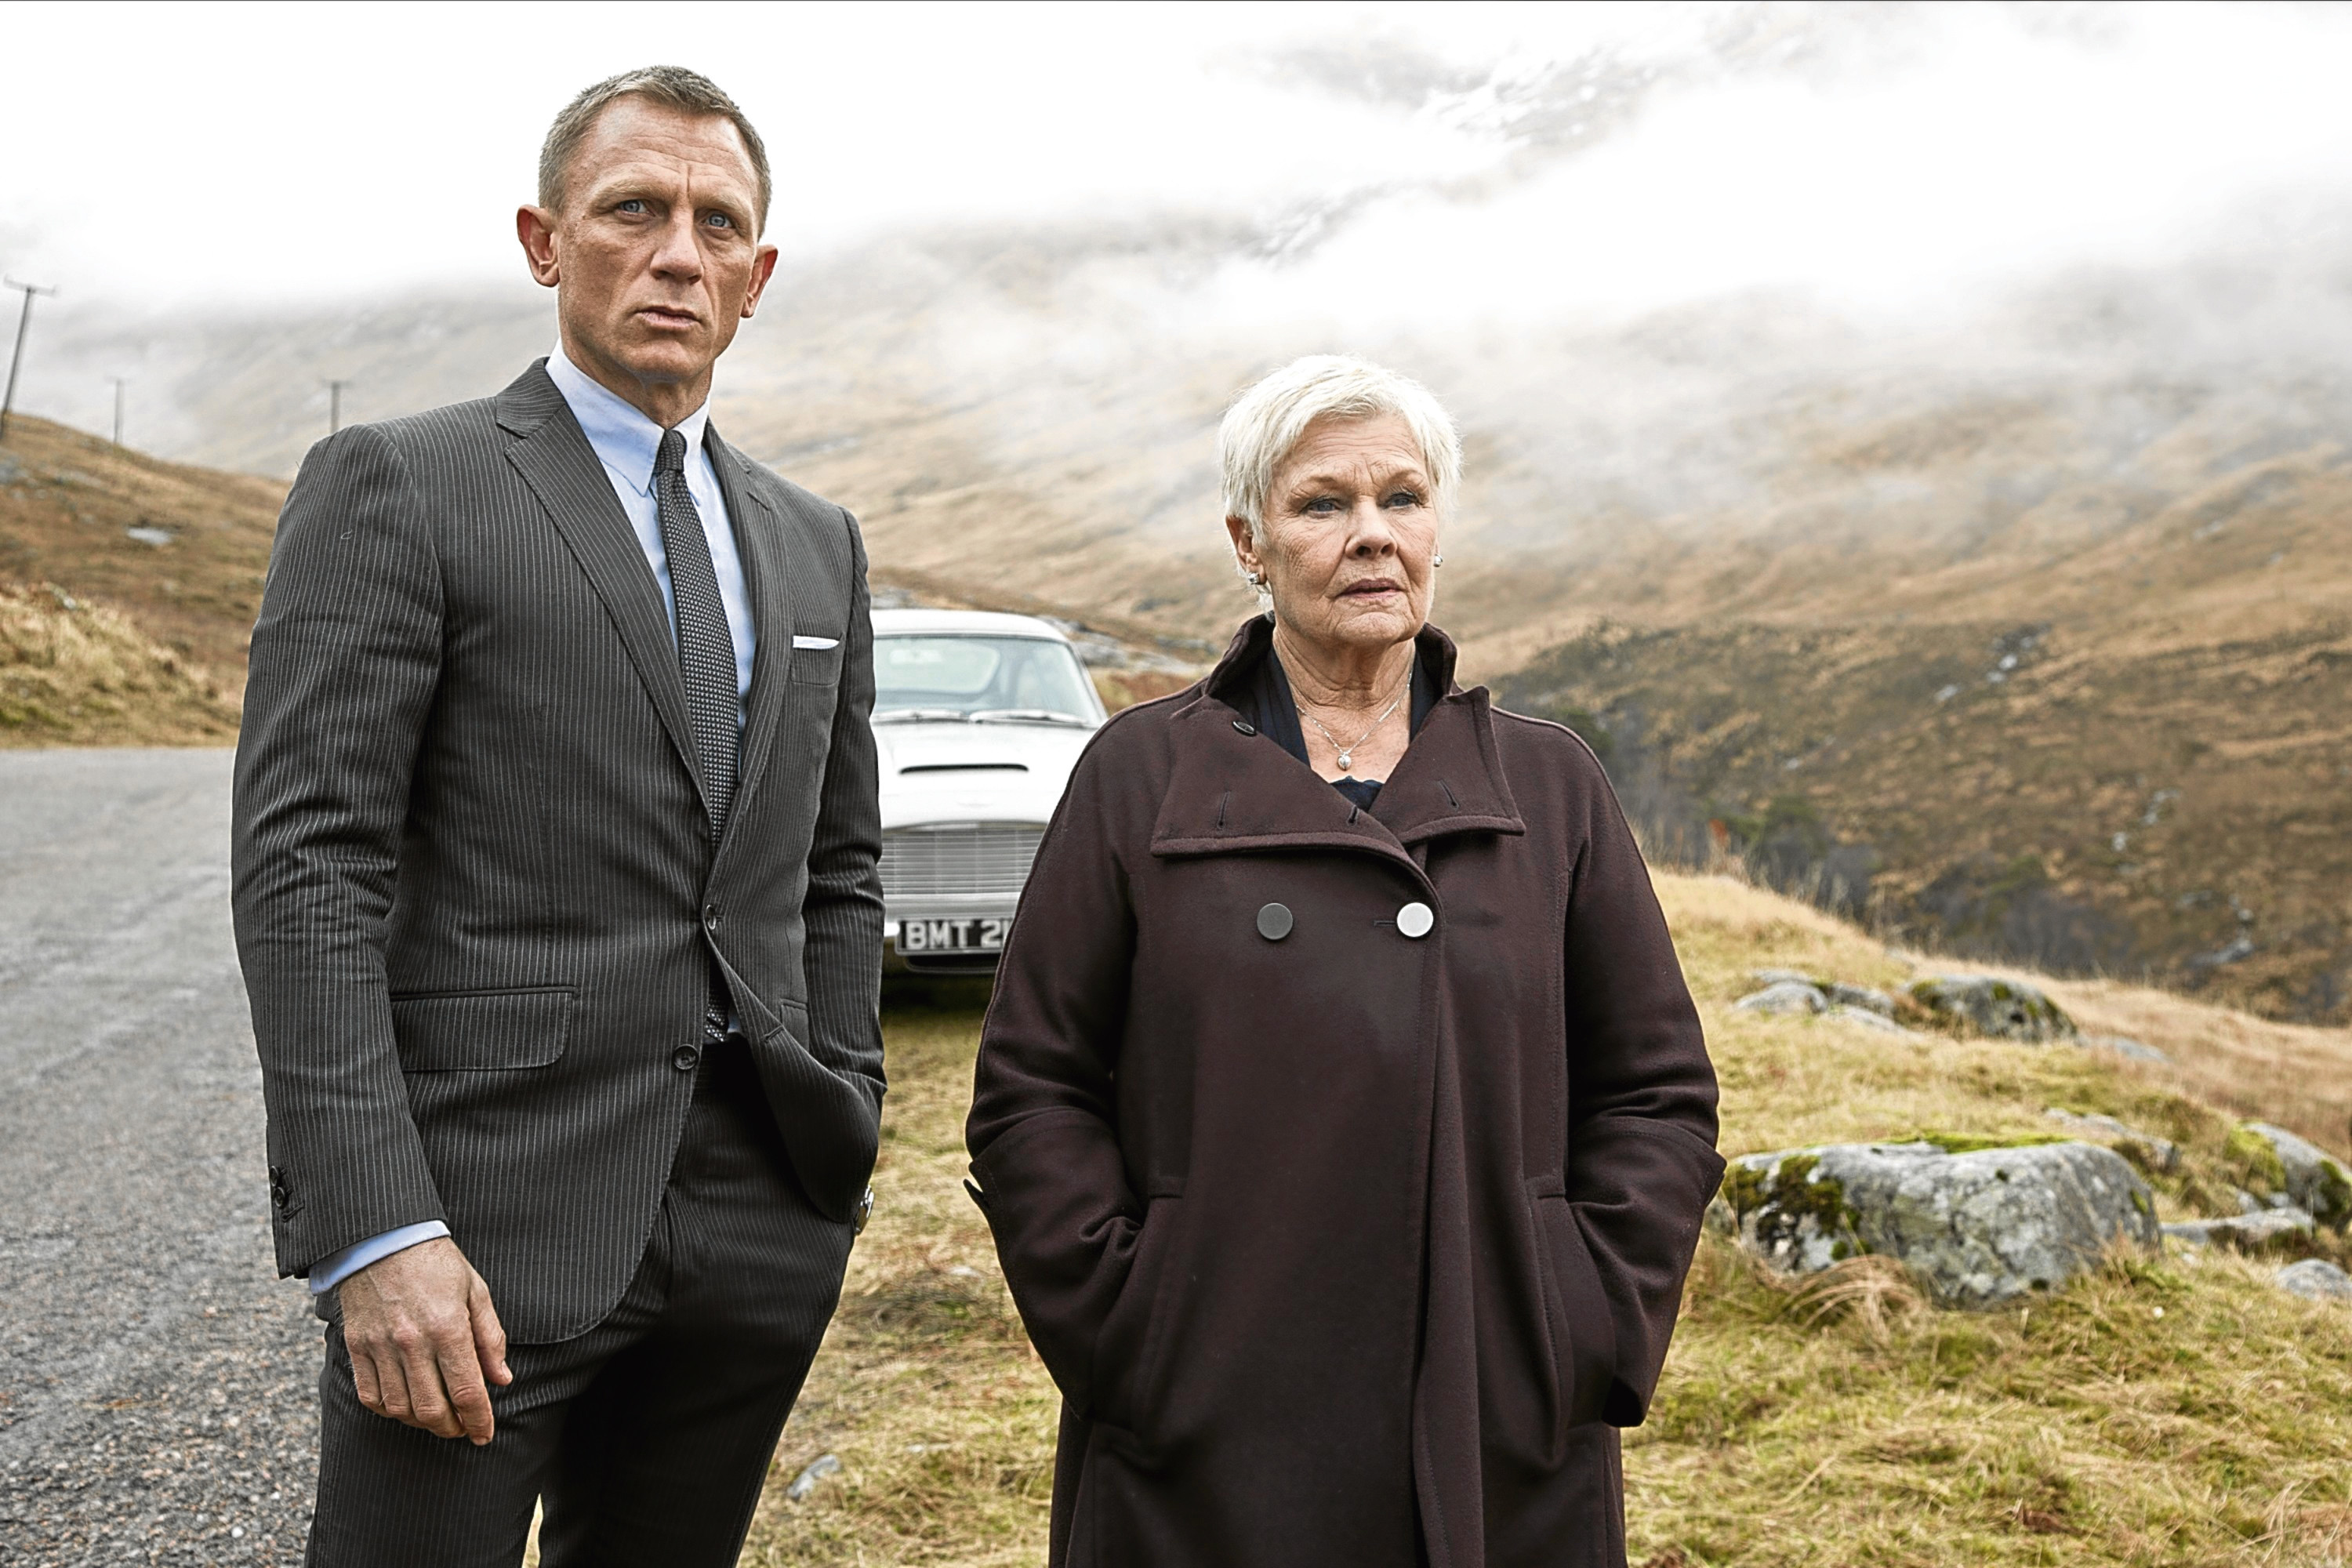 2012 James Bond movie Skyfall featured many Highlands locations.